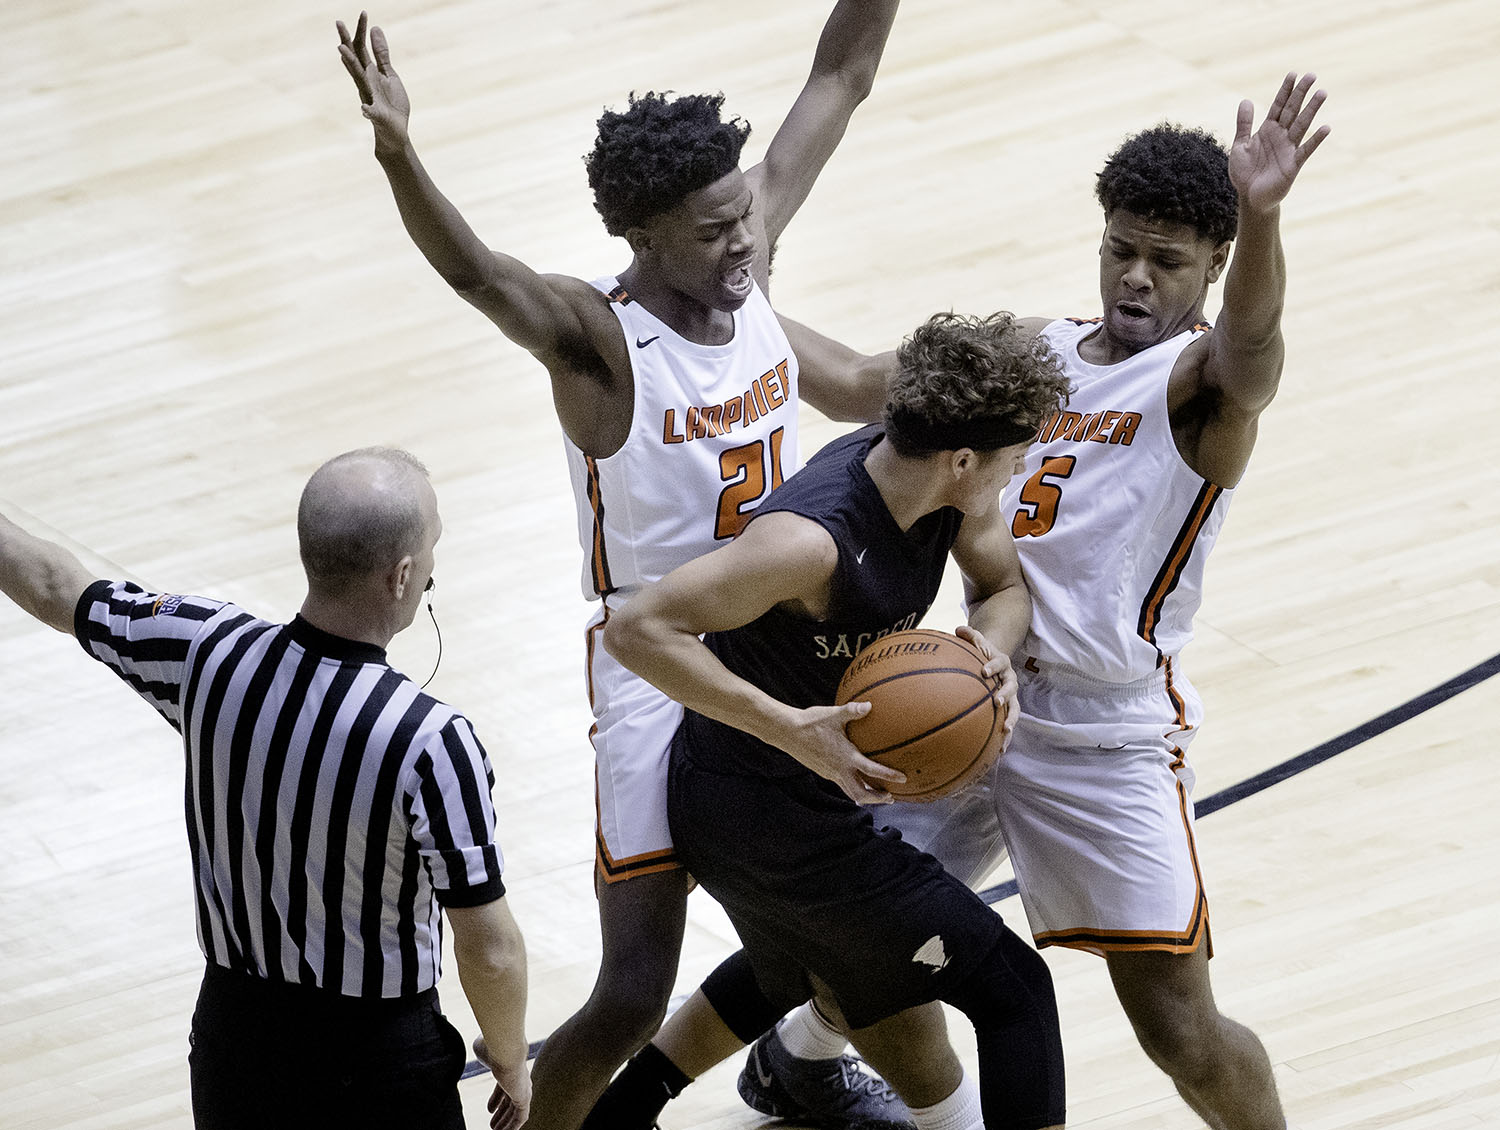 Lanphier's Deandre White and Stanley Morgan  contain Sacred Heart-Griffin's Isaiah Thompson on the perimeter during the Boys City Tournament at the Bank of Springfield Center Thursday, Jan. 17, 2019.  [Ted Schurter/The State Journal-Register]